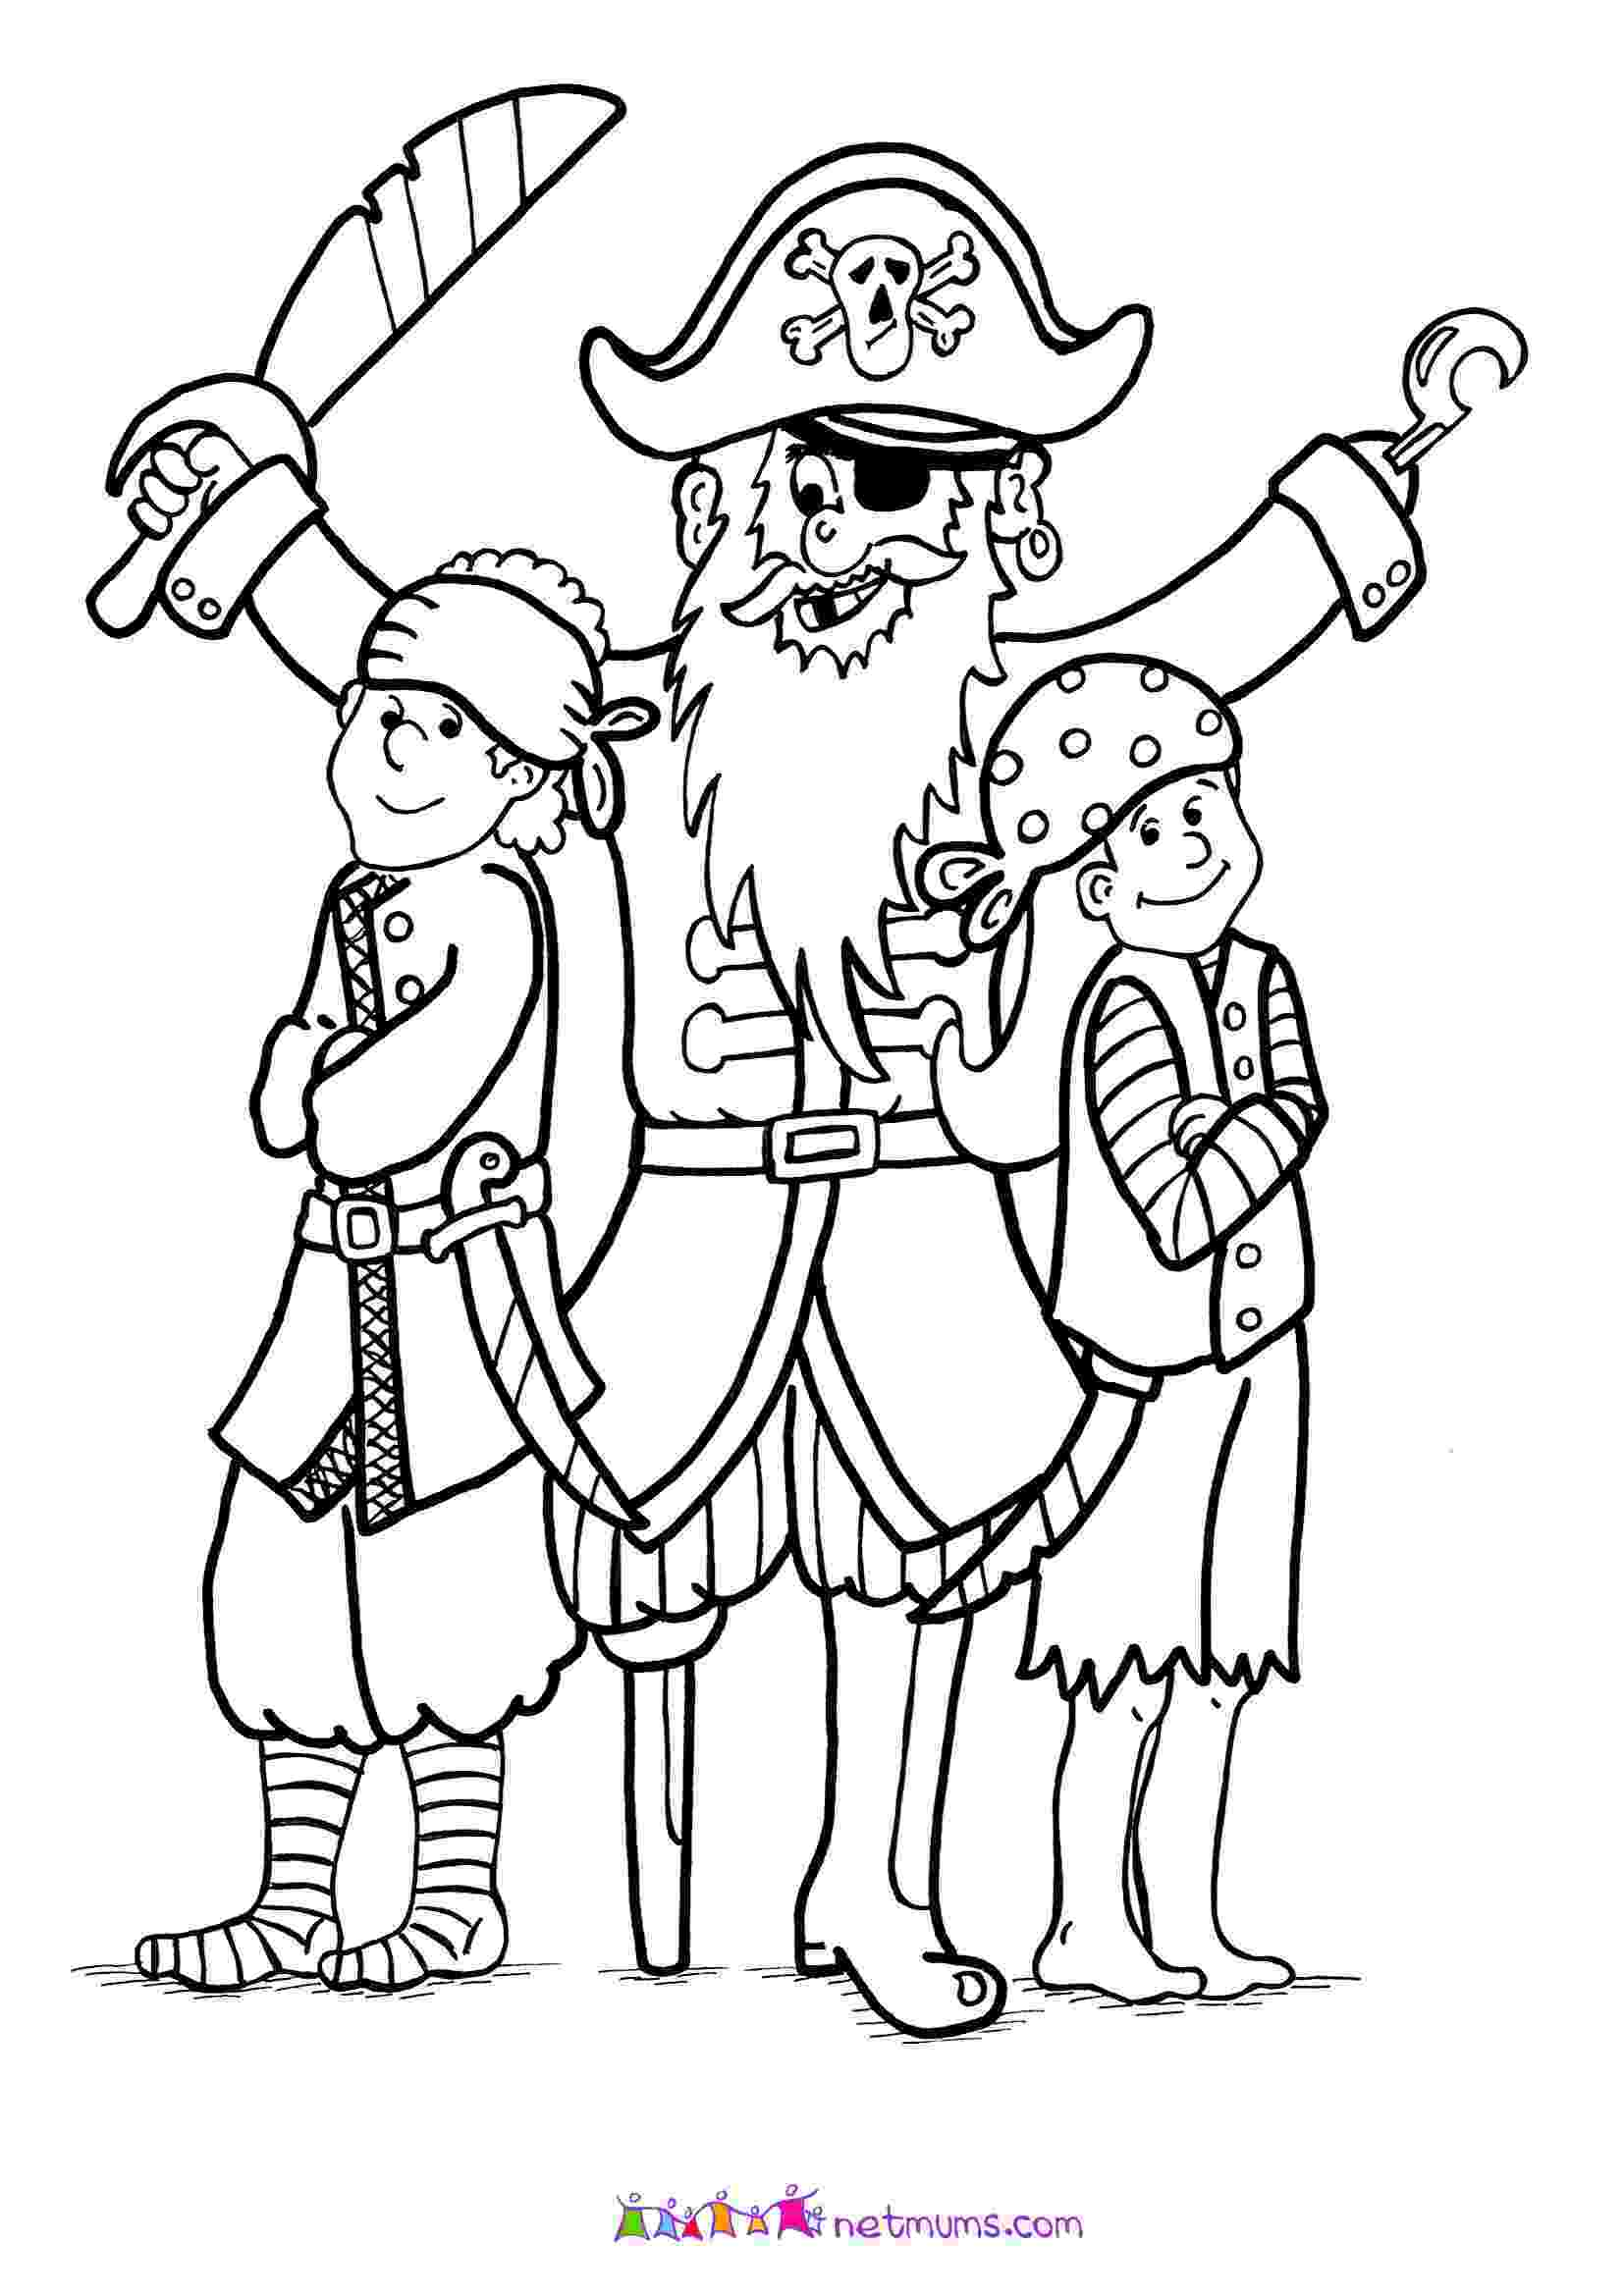 pirate coloring pirate colouring pages coloring pirate